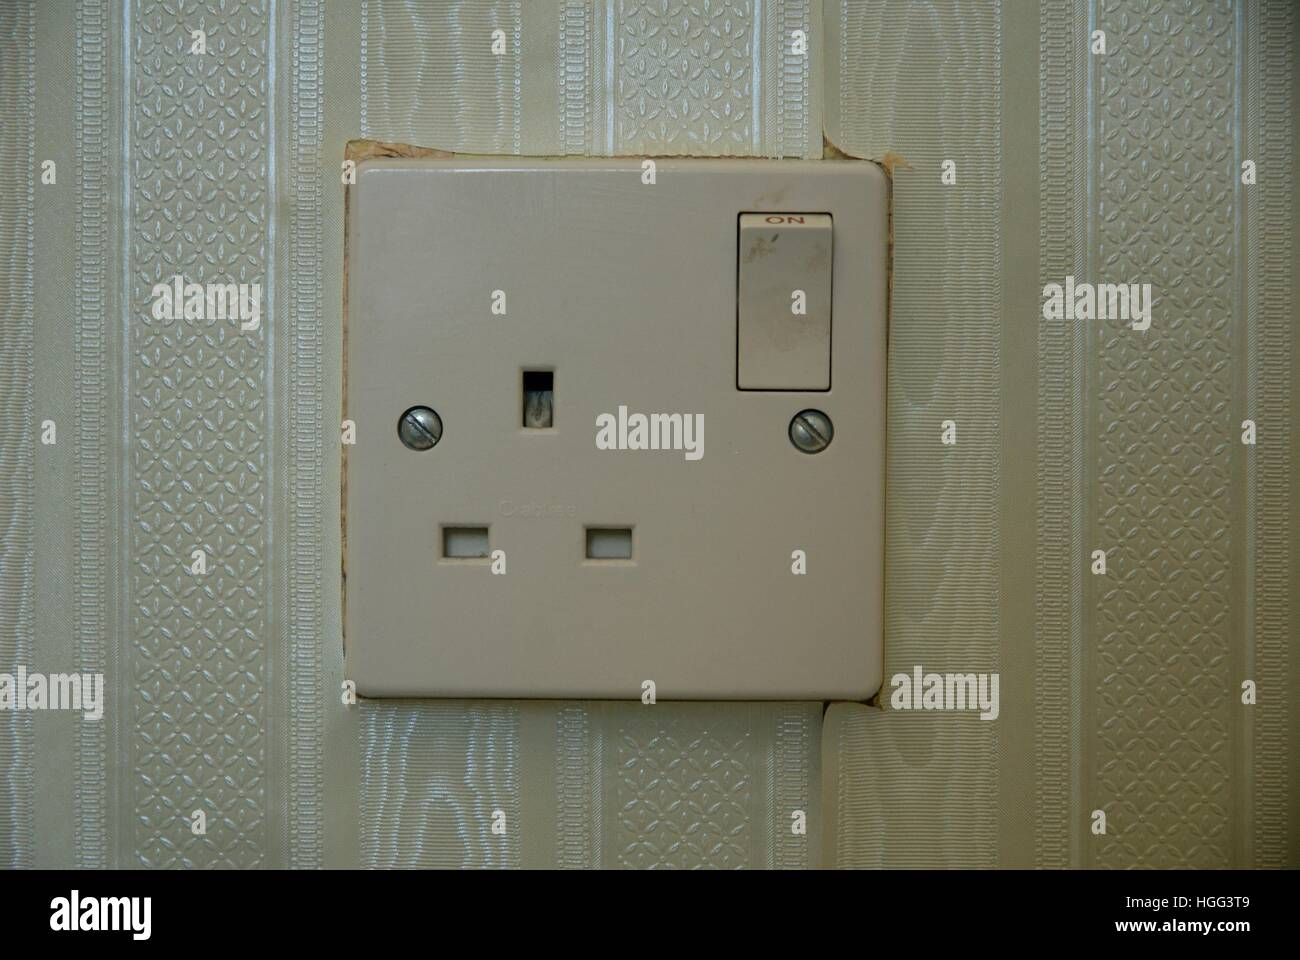 Circuit Breaker Domestic Stock Photos Fuse Box Rcd Together With Safety Switch A British Three Prong Plug Socket Image